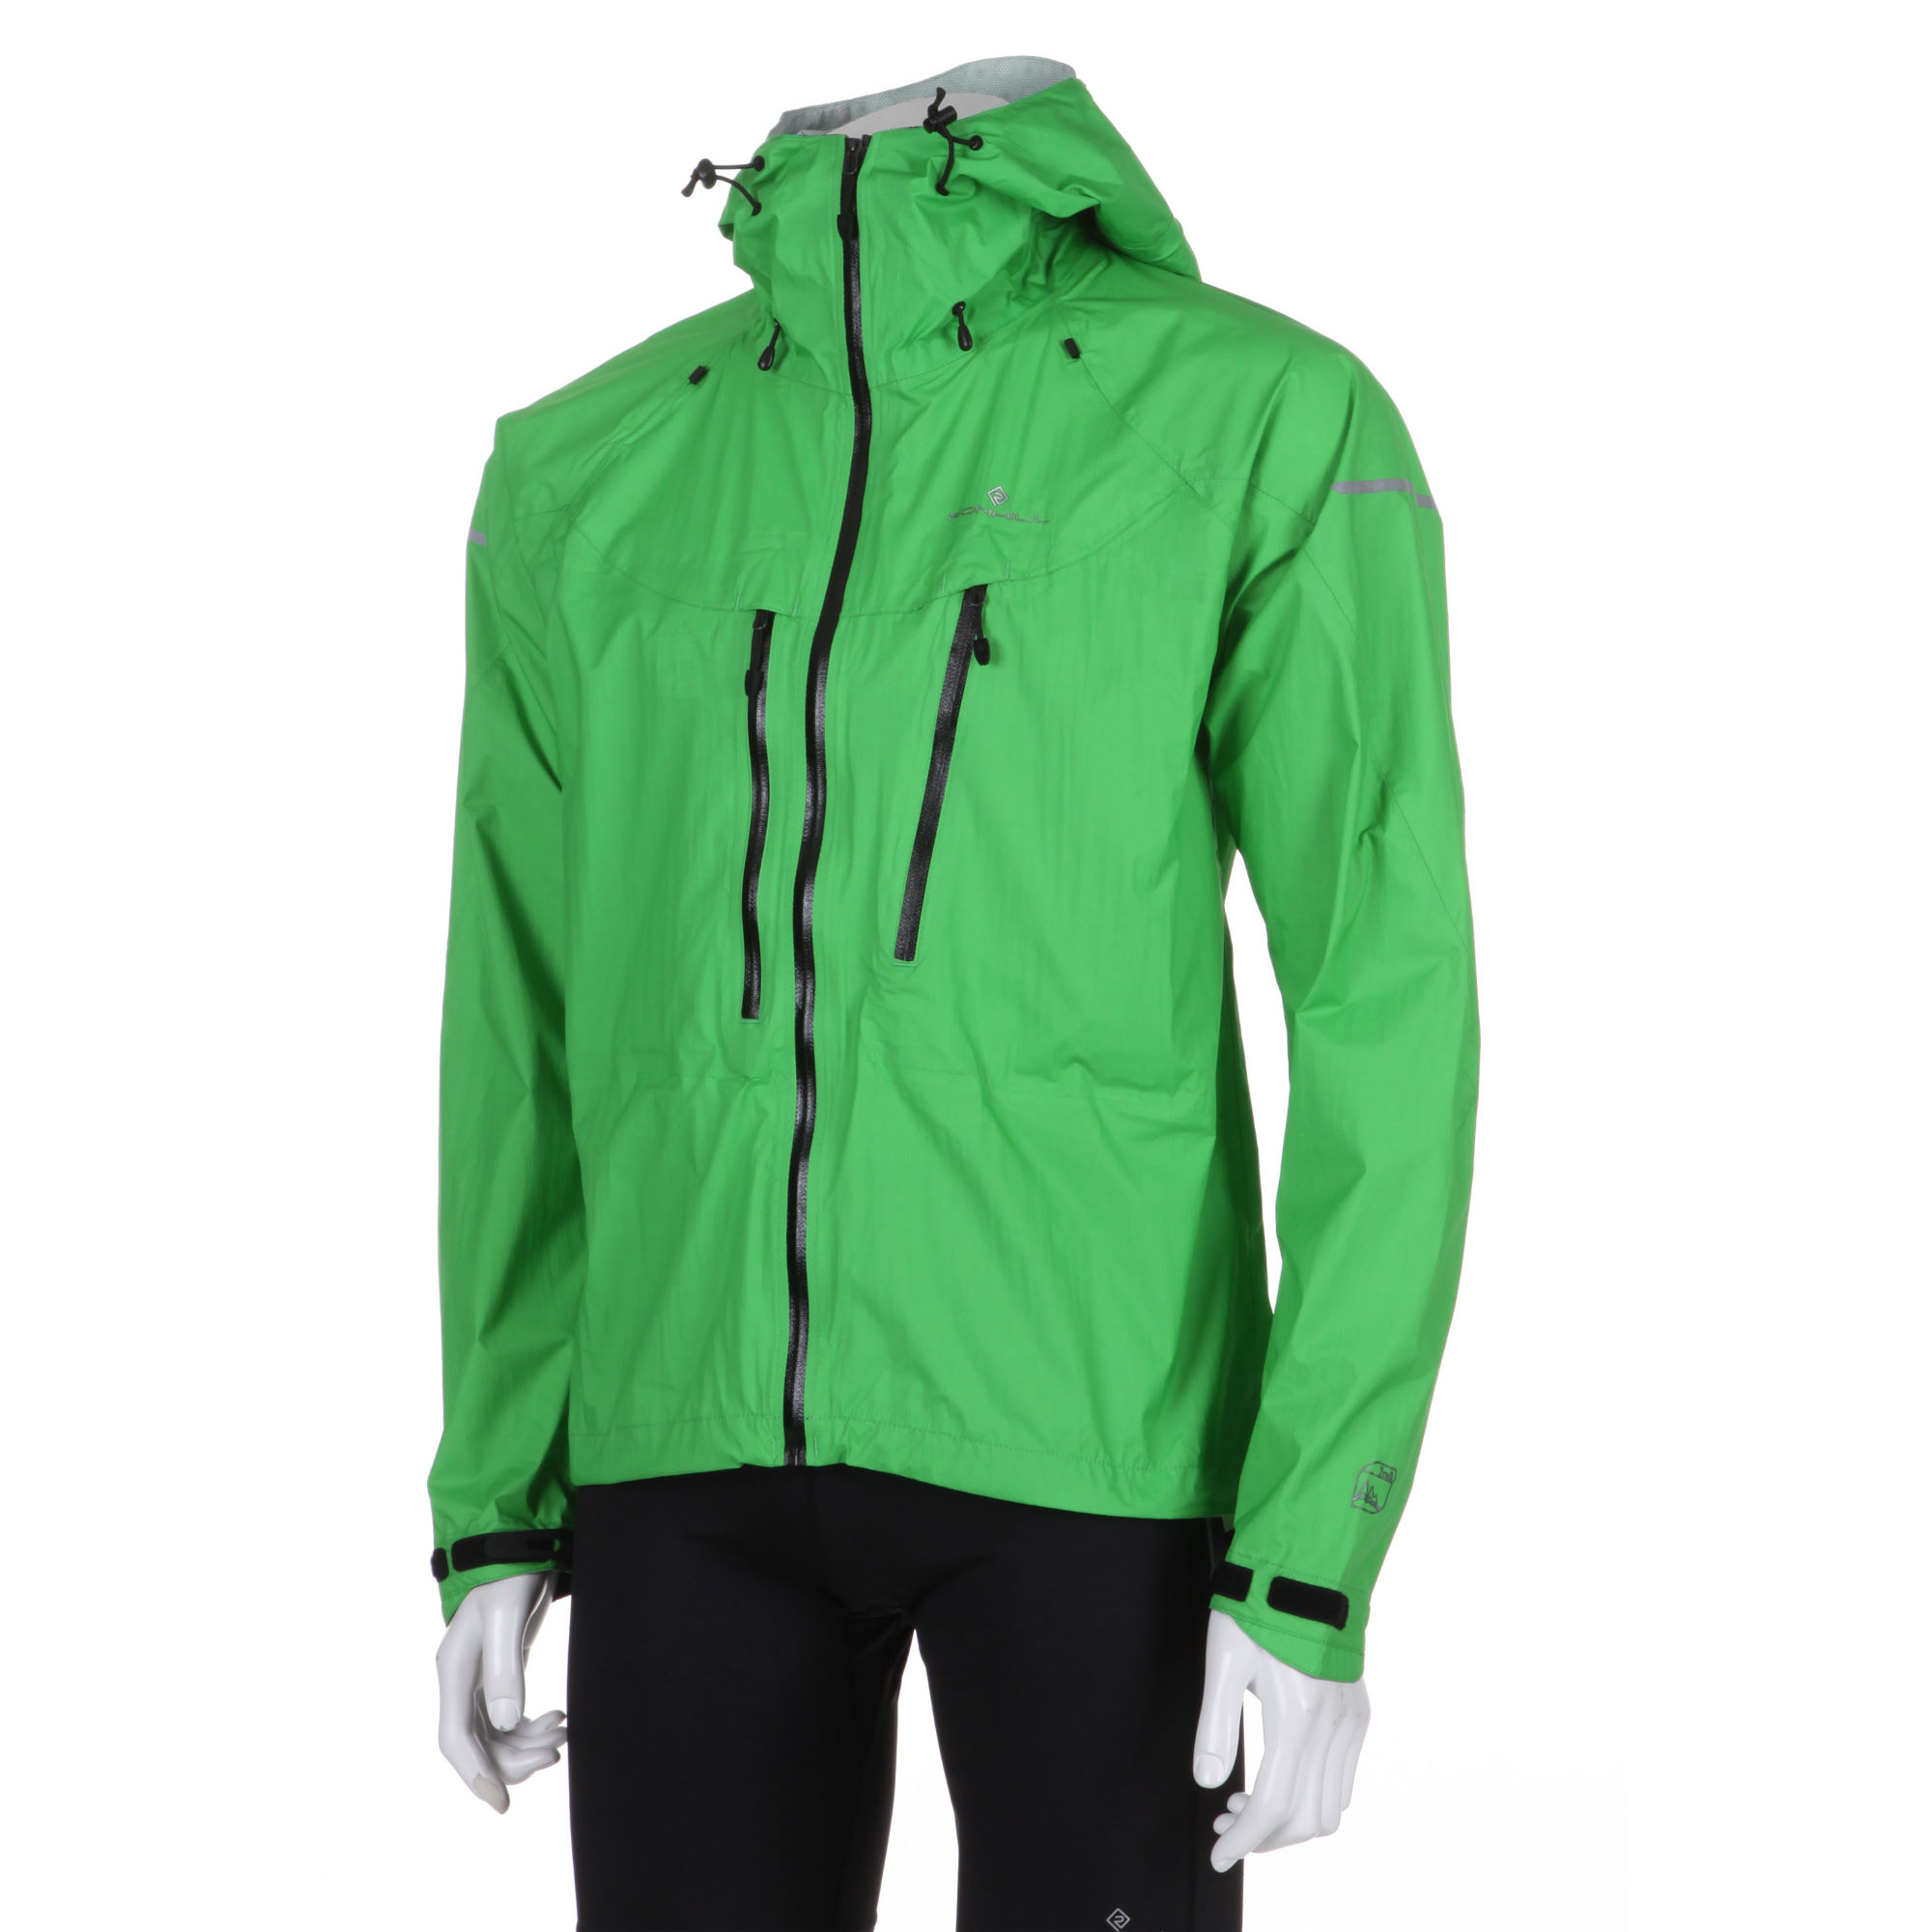 vestes de running imperm ables ronhill trail tempest jacket aw12 wiggle france. Black Bedroom Furniture Sets. Home Design Ideas